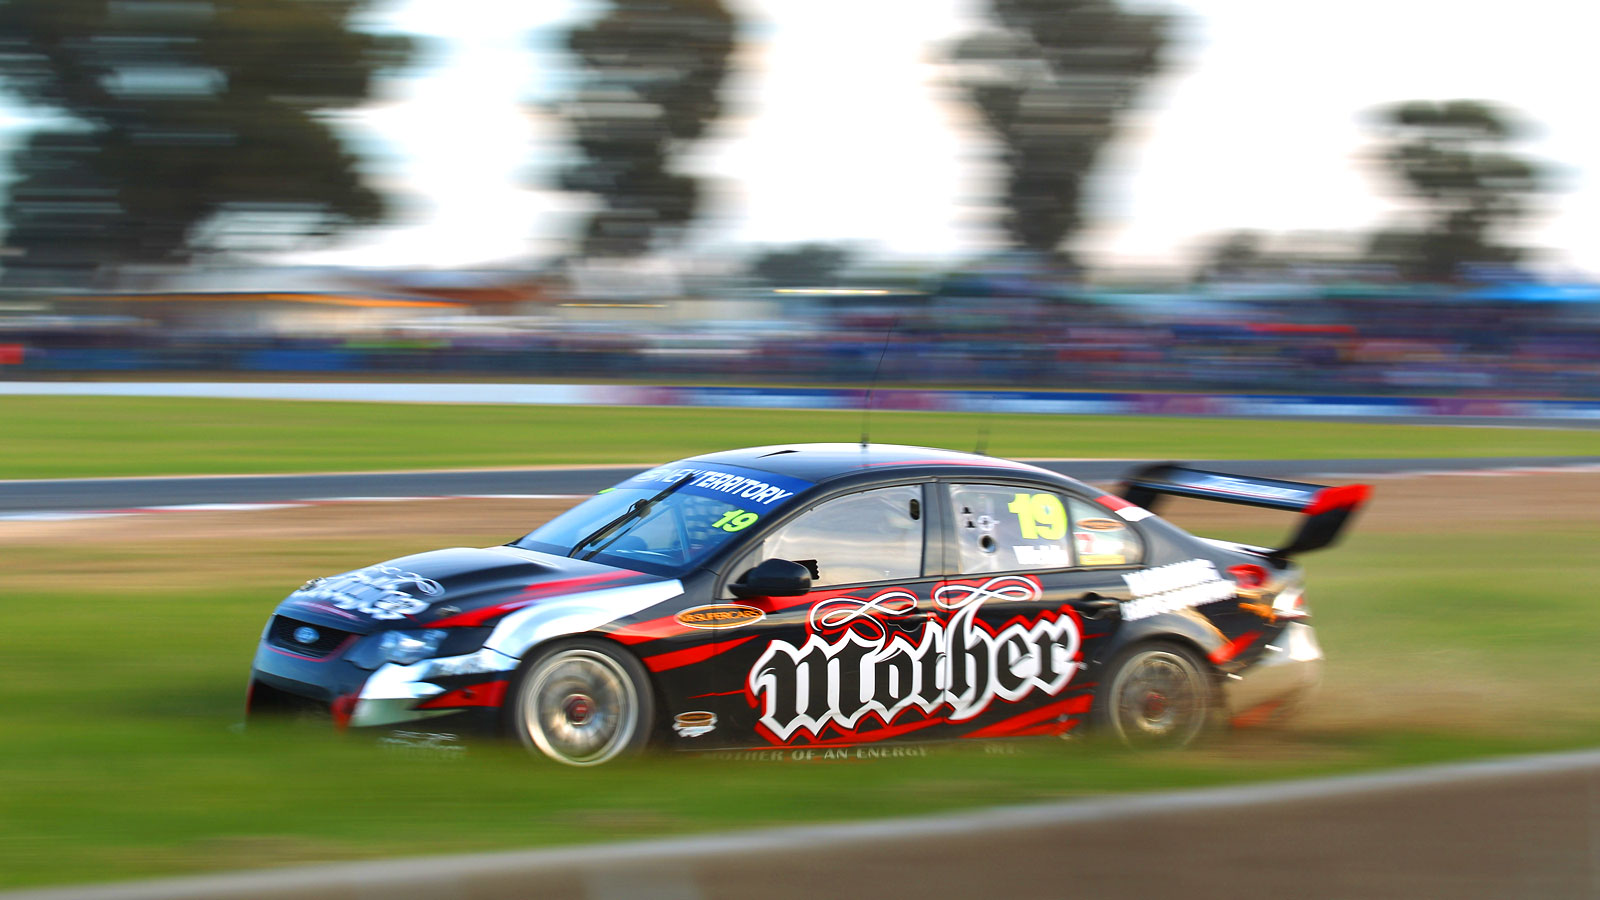 Sports   V8 Supercars V8 Supercar Wallpaper 1600x900